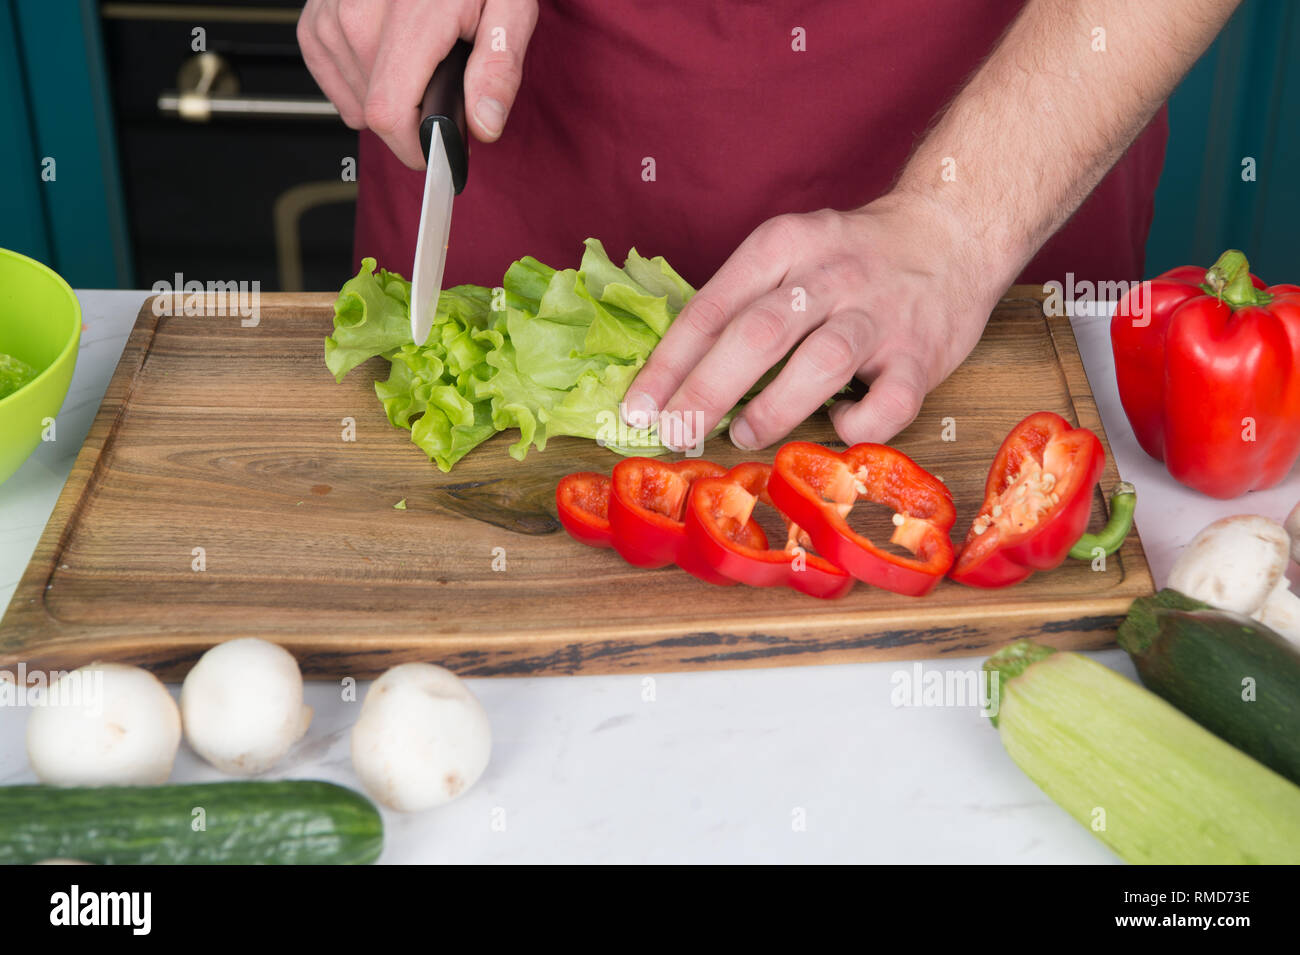 Be careful with knife. Chef teaches how quickly chop vegetables. Chop food safely and efficiently, ensure that you use the right tools. Learn how hold knife correctly and use right chopping technique. - Stock Image